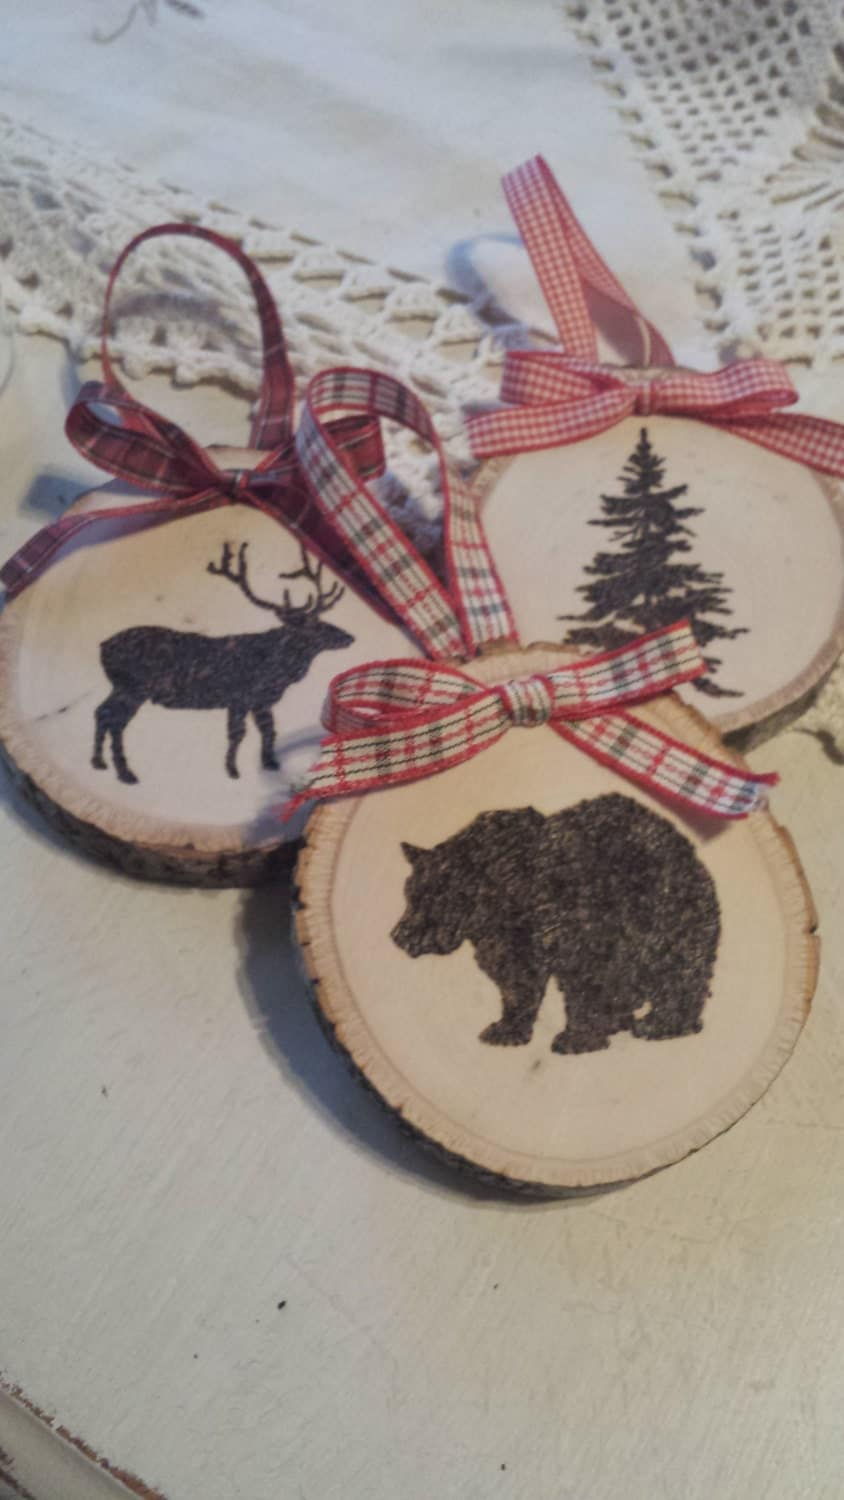 Diy Christmas Ornaments Etsy : Wood burned christmas ornaments by thistlensage on etsy